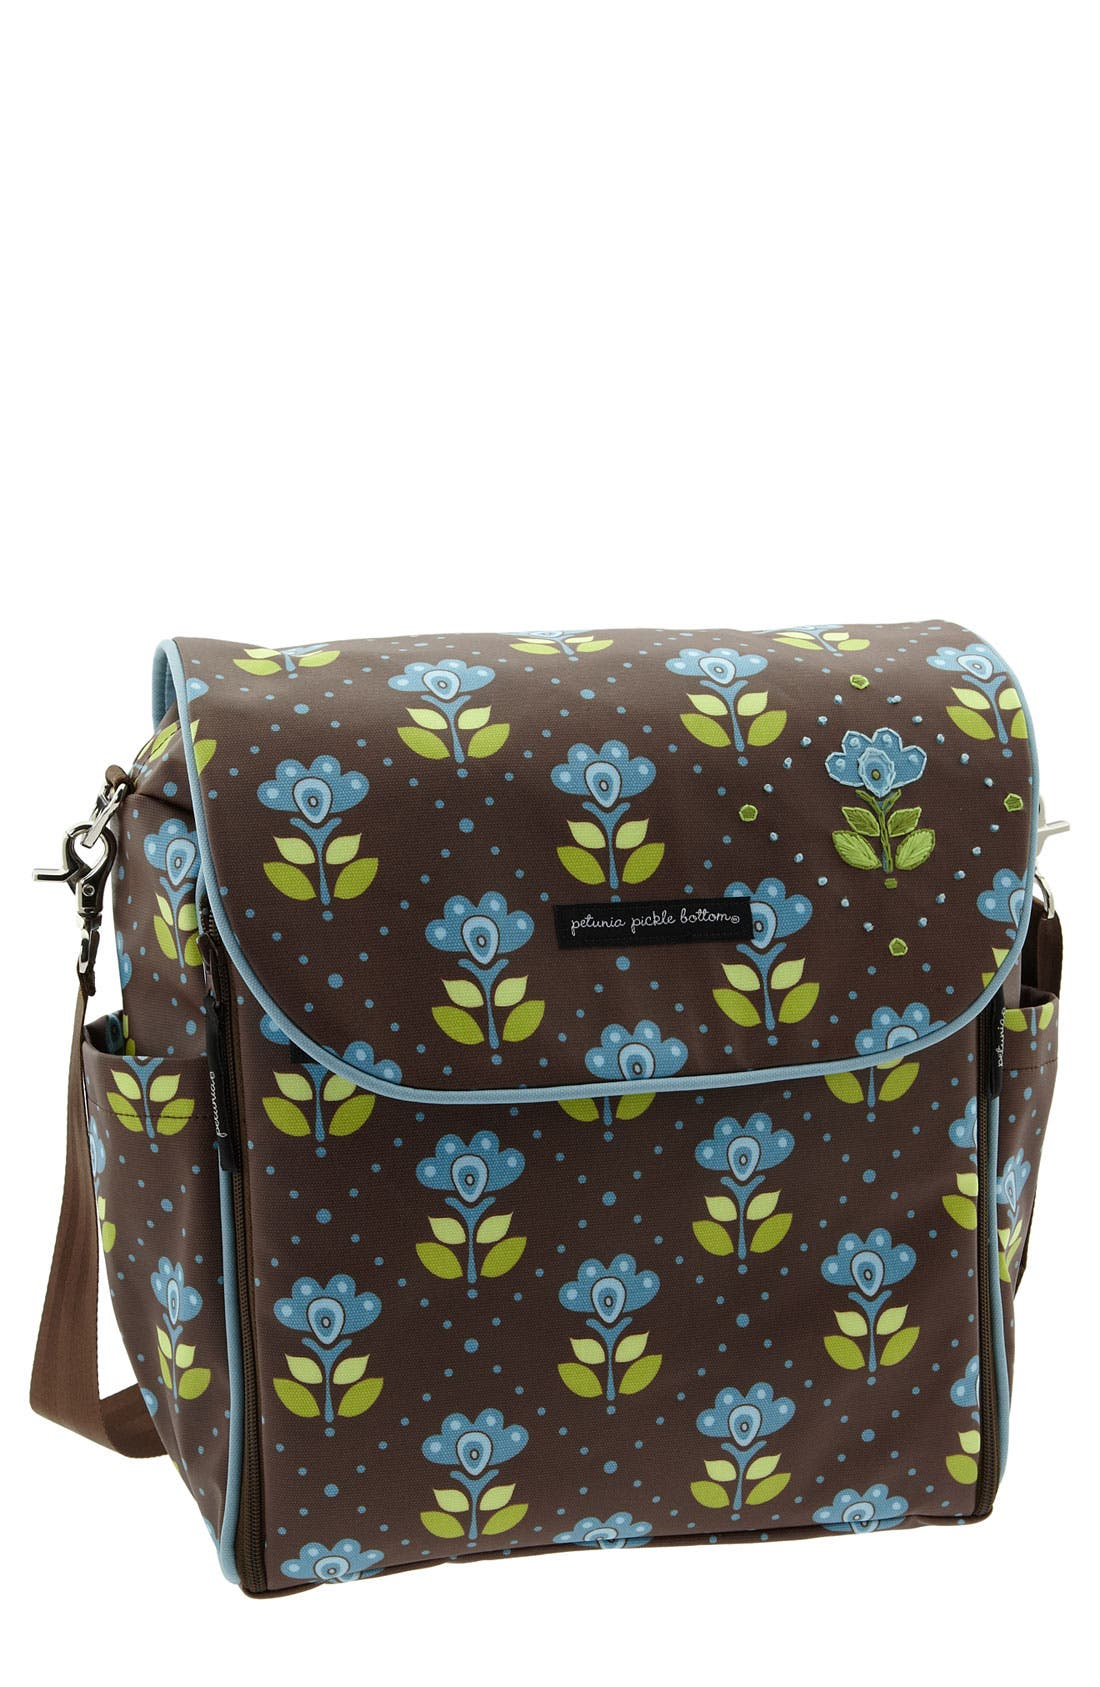 Main Image - Petunia Pickle Bottom 'Brocade' Diaper Bag